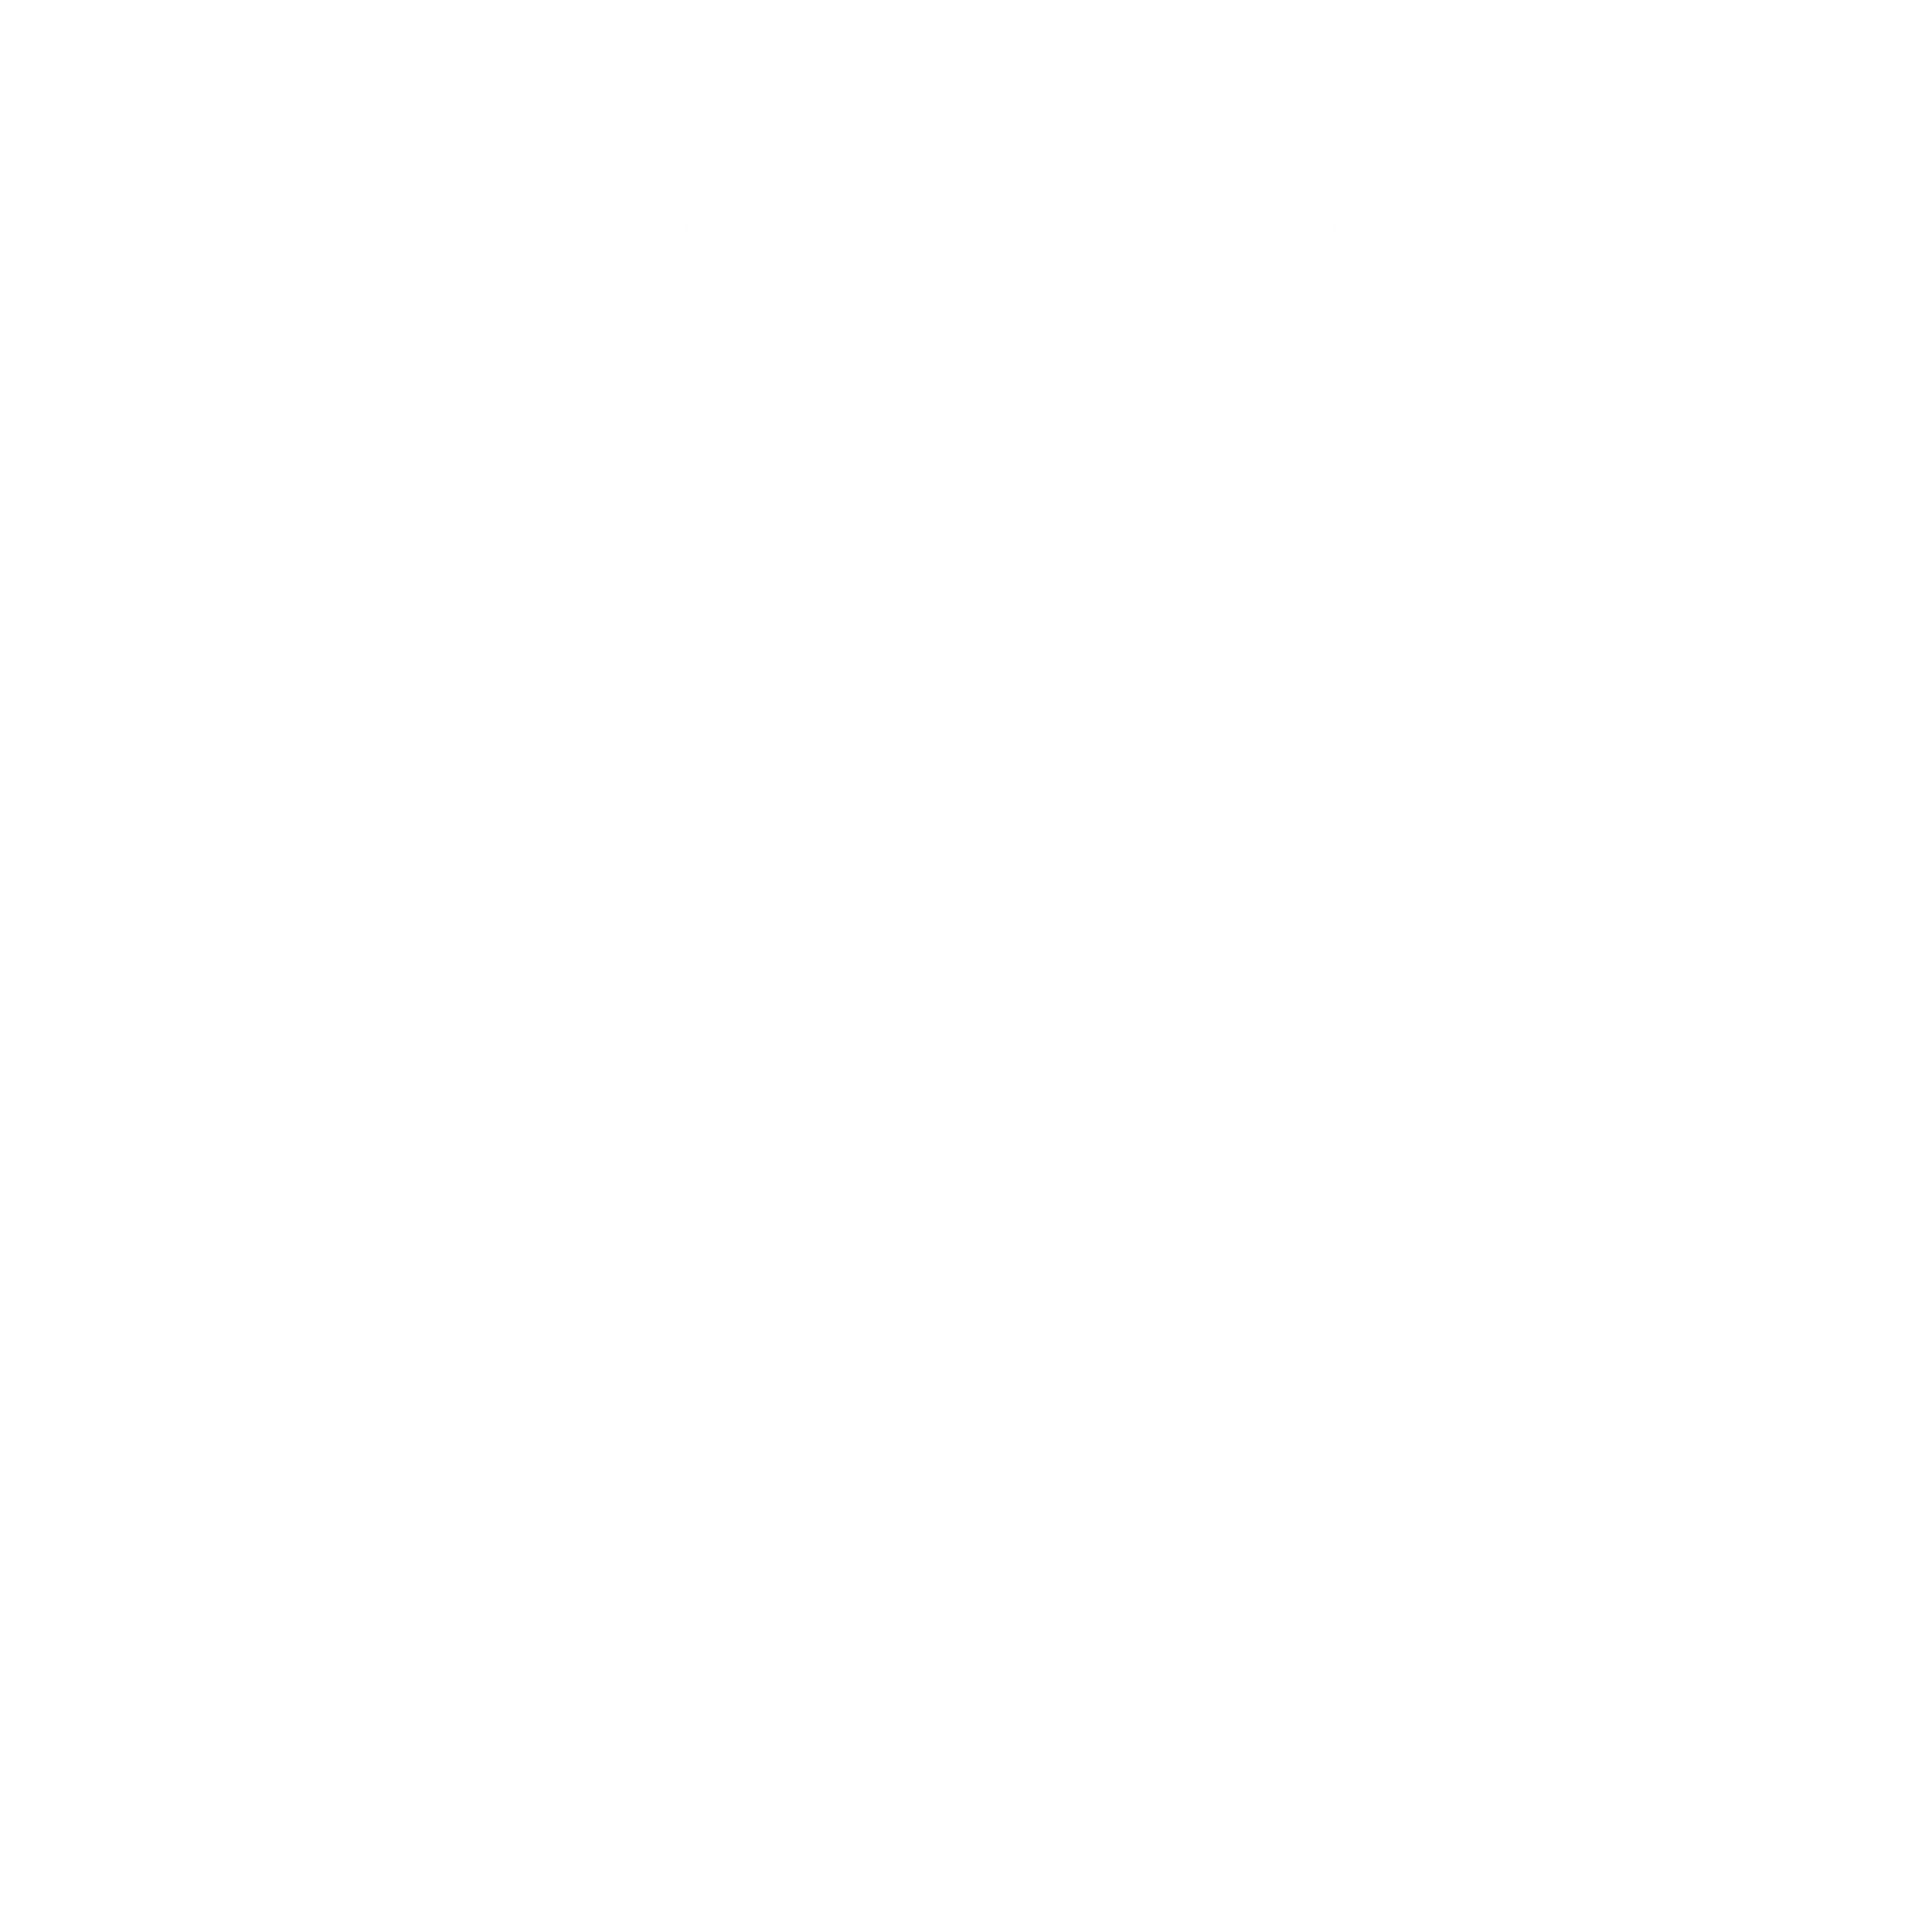 Amy Bovaird Author Watermark logo with a whimsical A in the center of the word Amy Bovaird, Author, Speaker in the form of a circle around the letter A